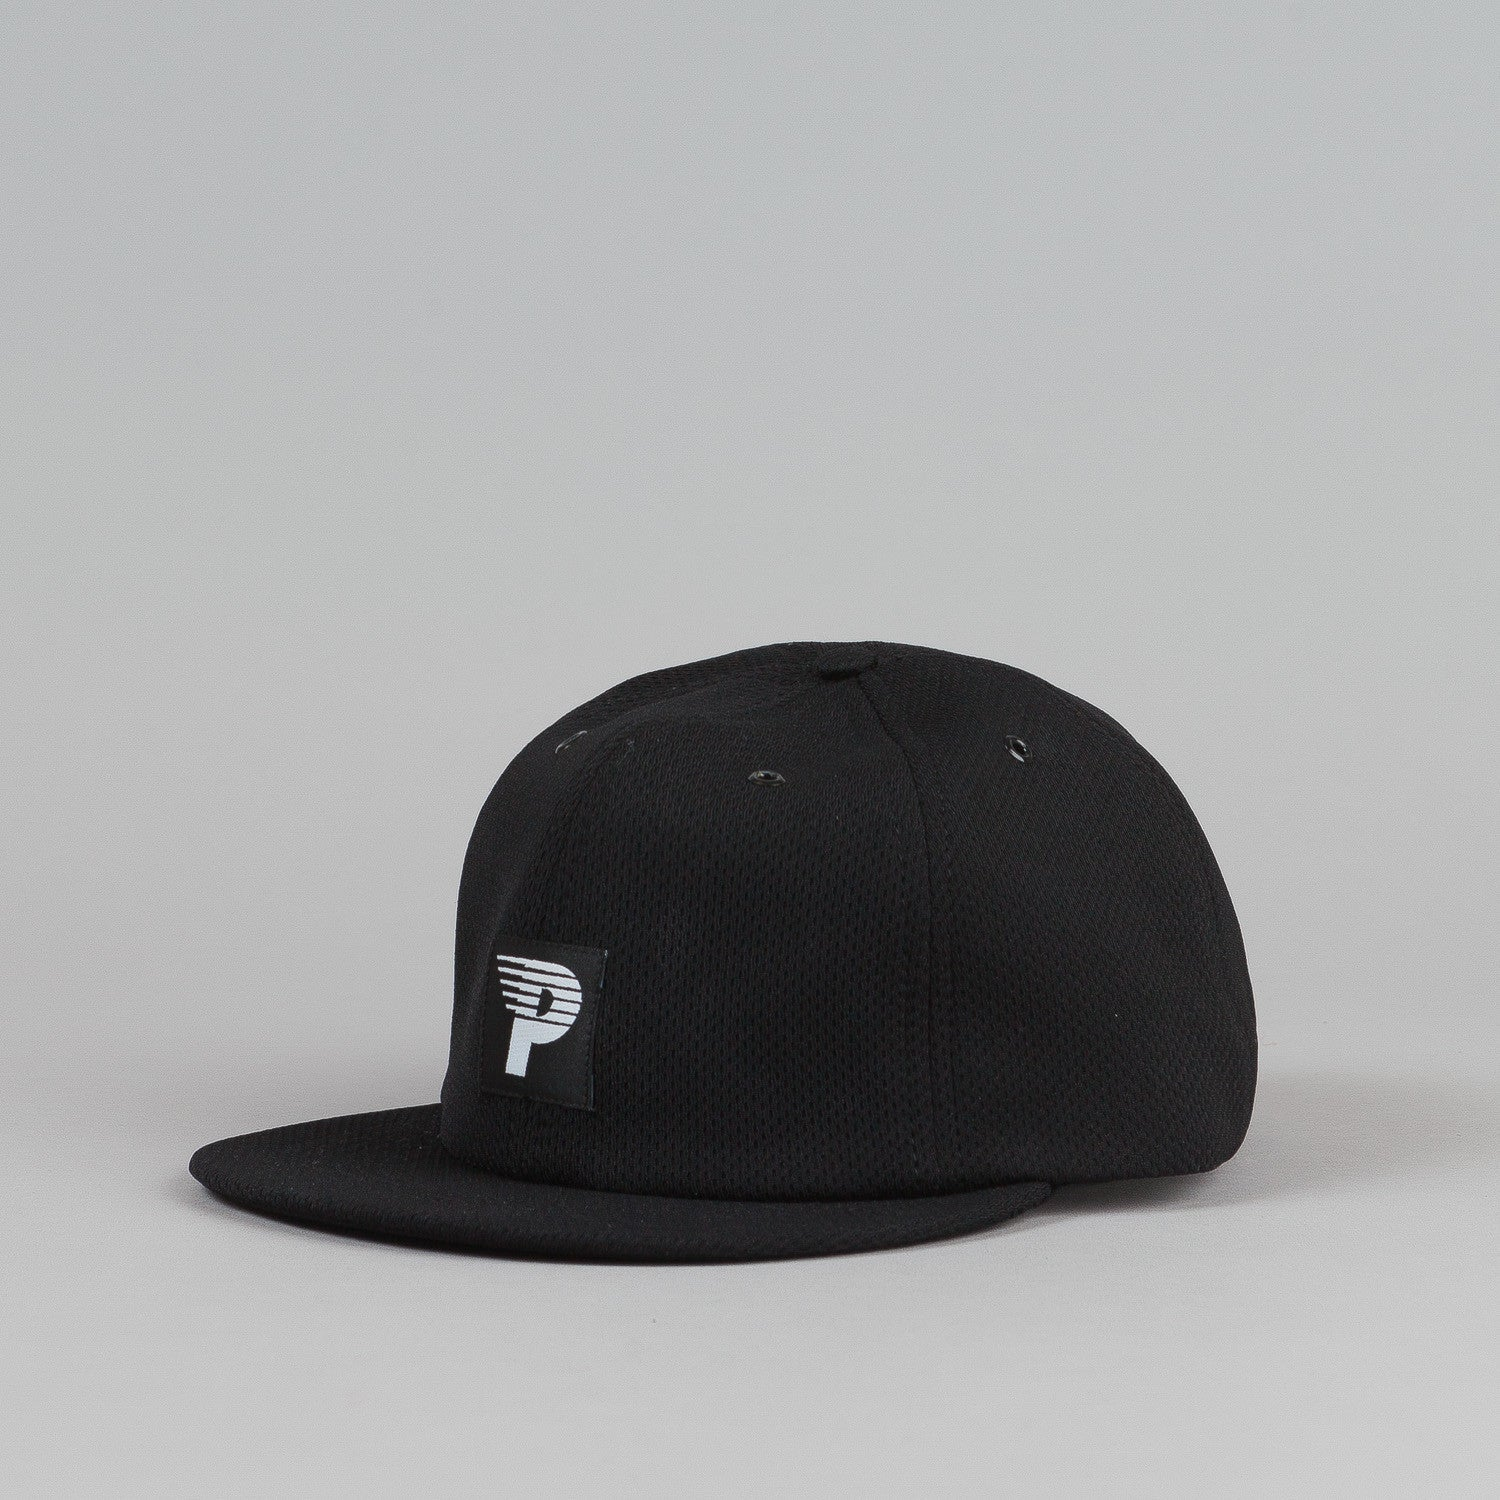 Polar Speedy P Mesh Cap Black